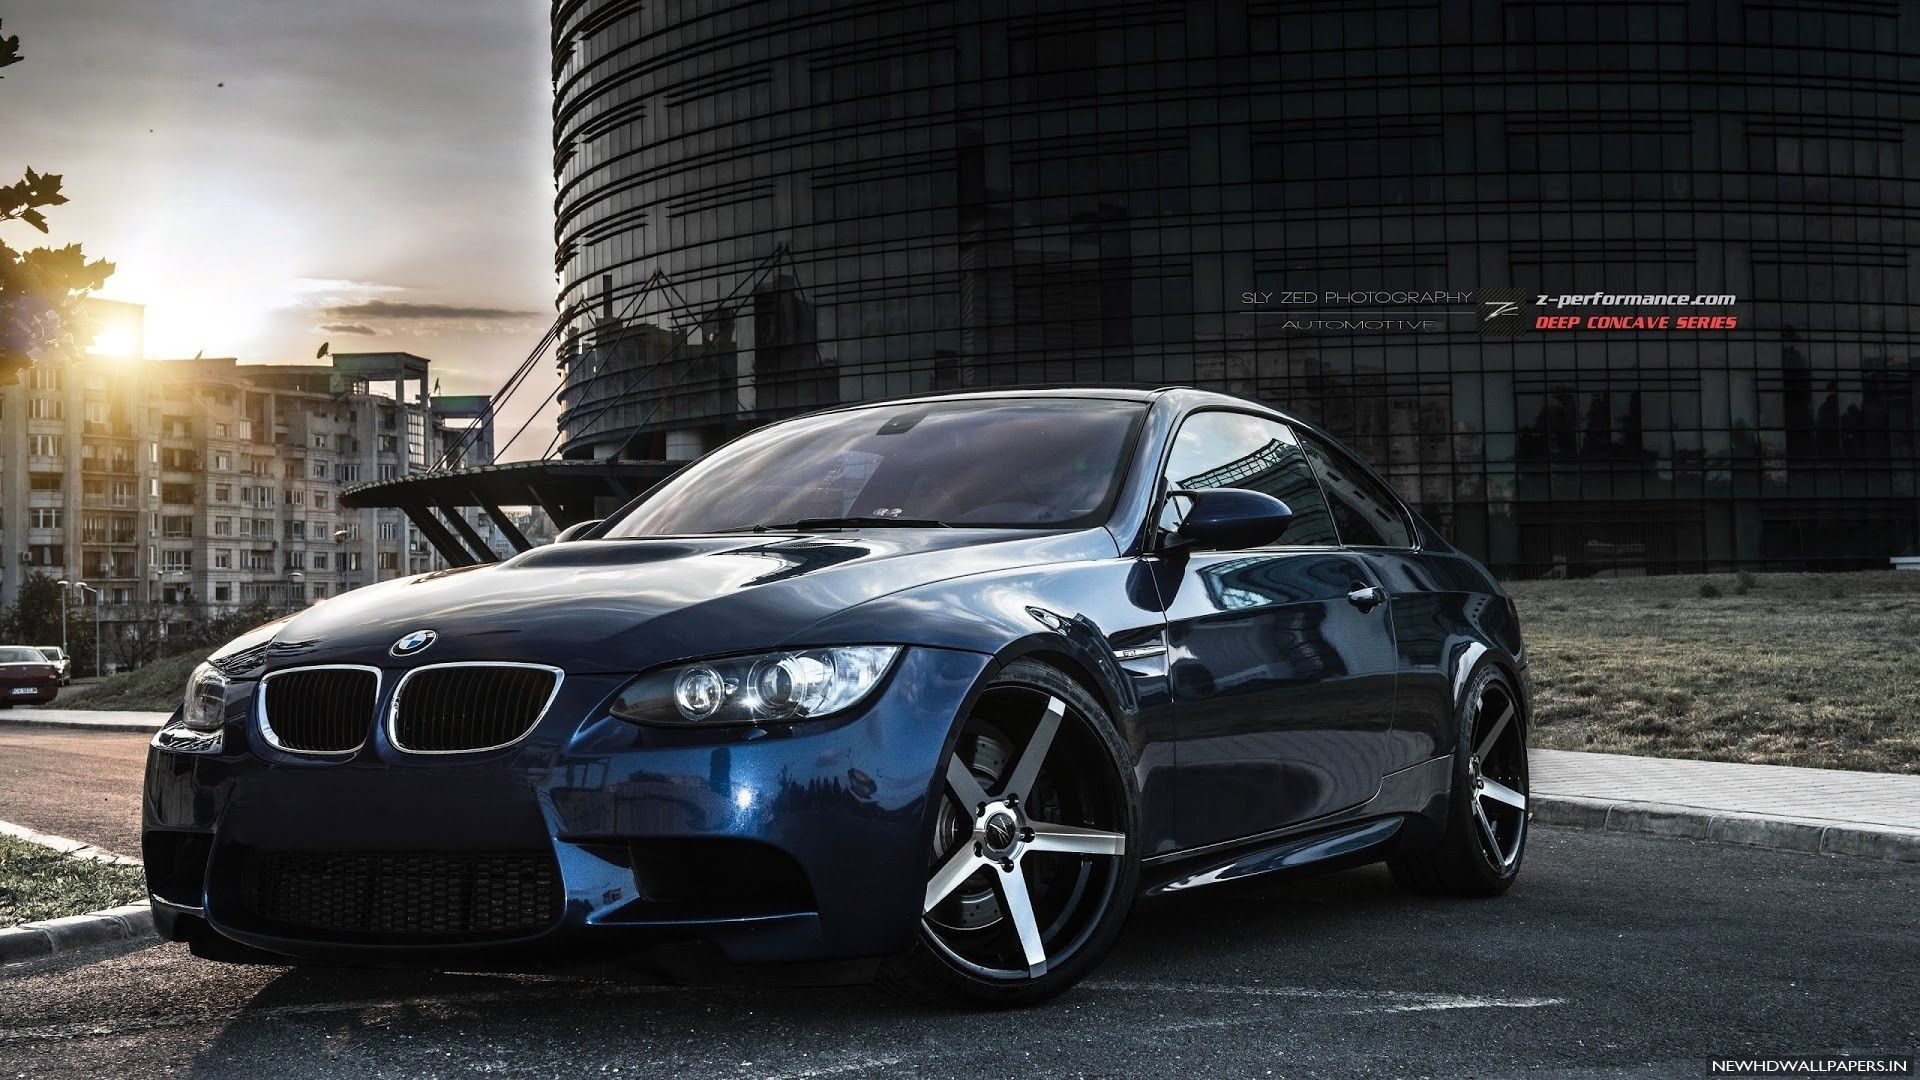 Full Hd Bmw Wallpapers Top Free Full Hd Bmw Backgrounds Wallpaperaccess